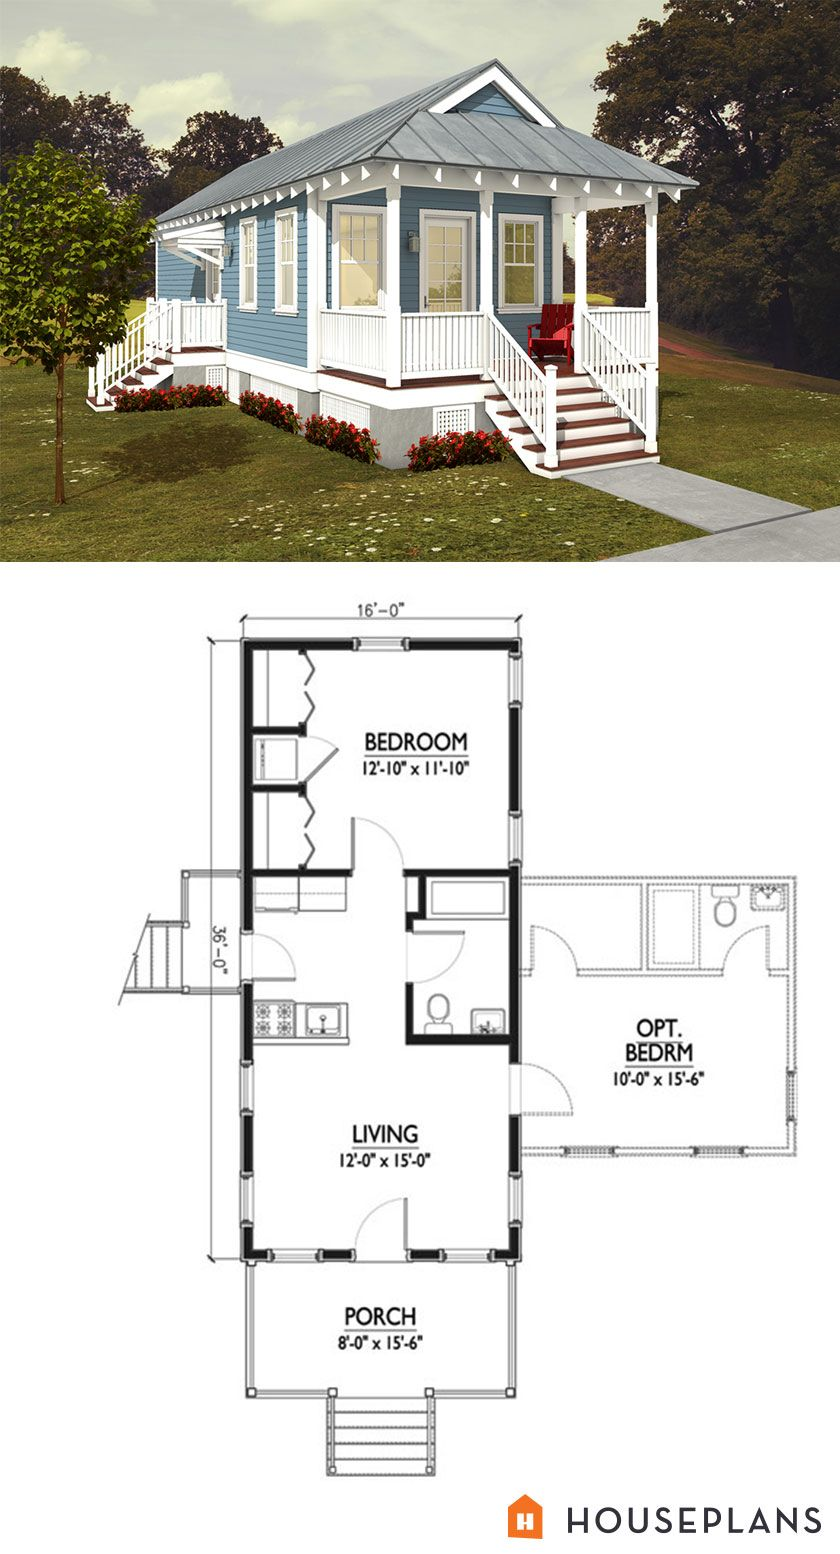 Small home floor plan kits.